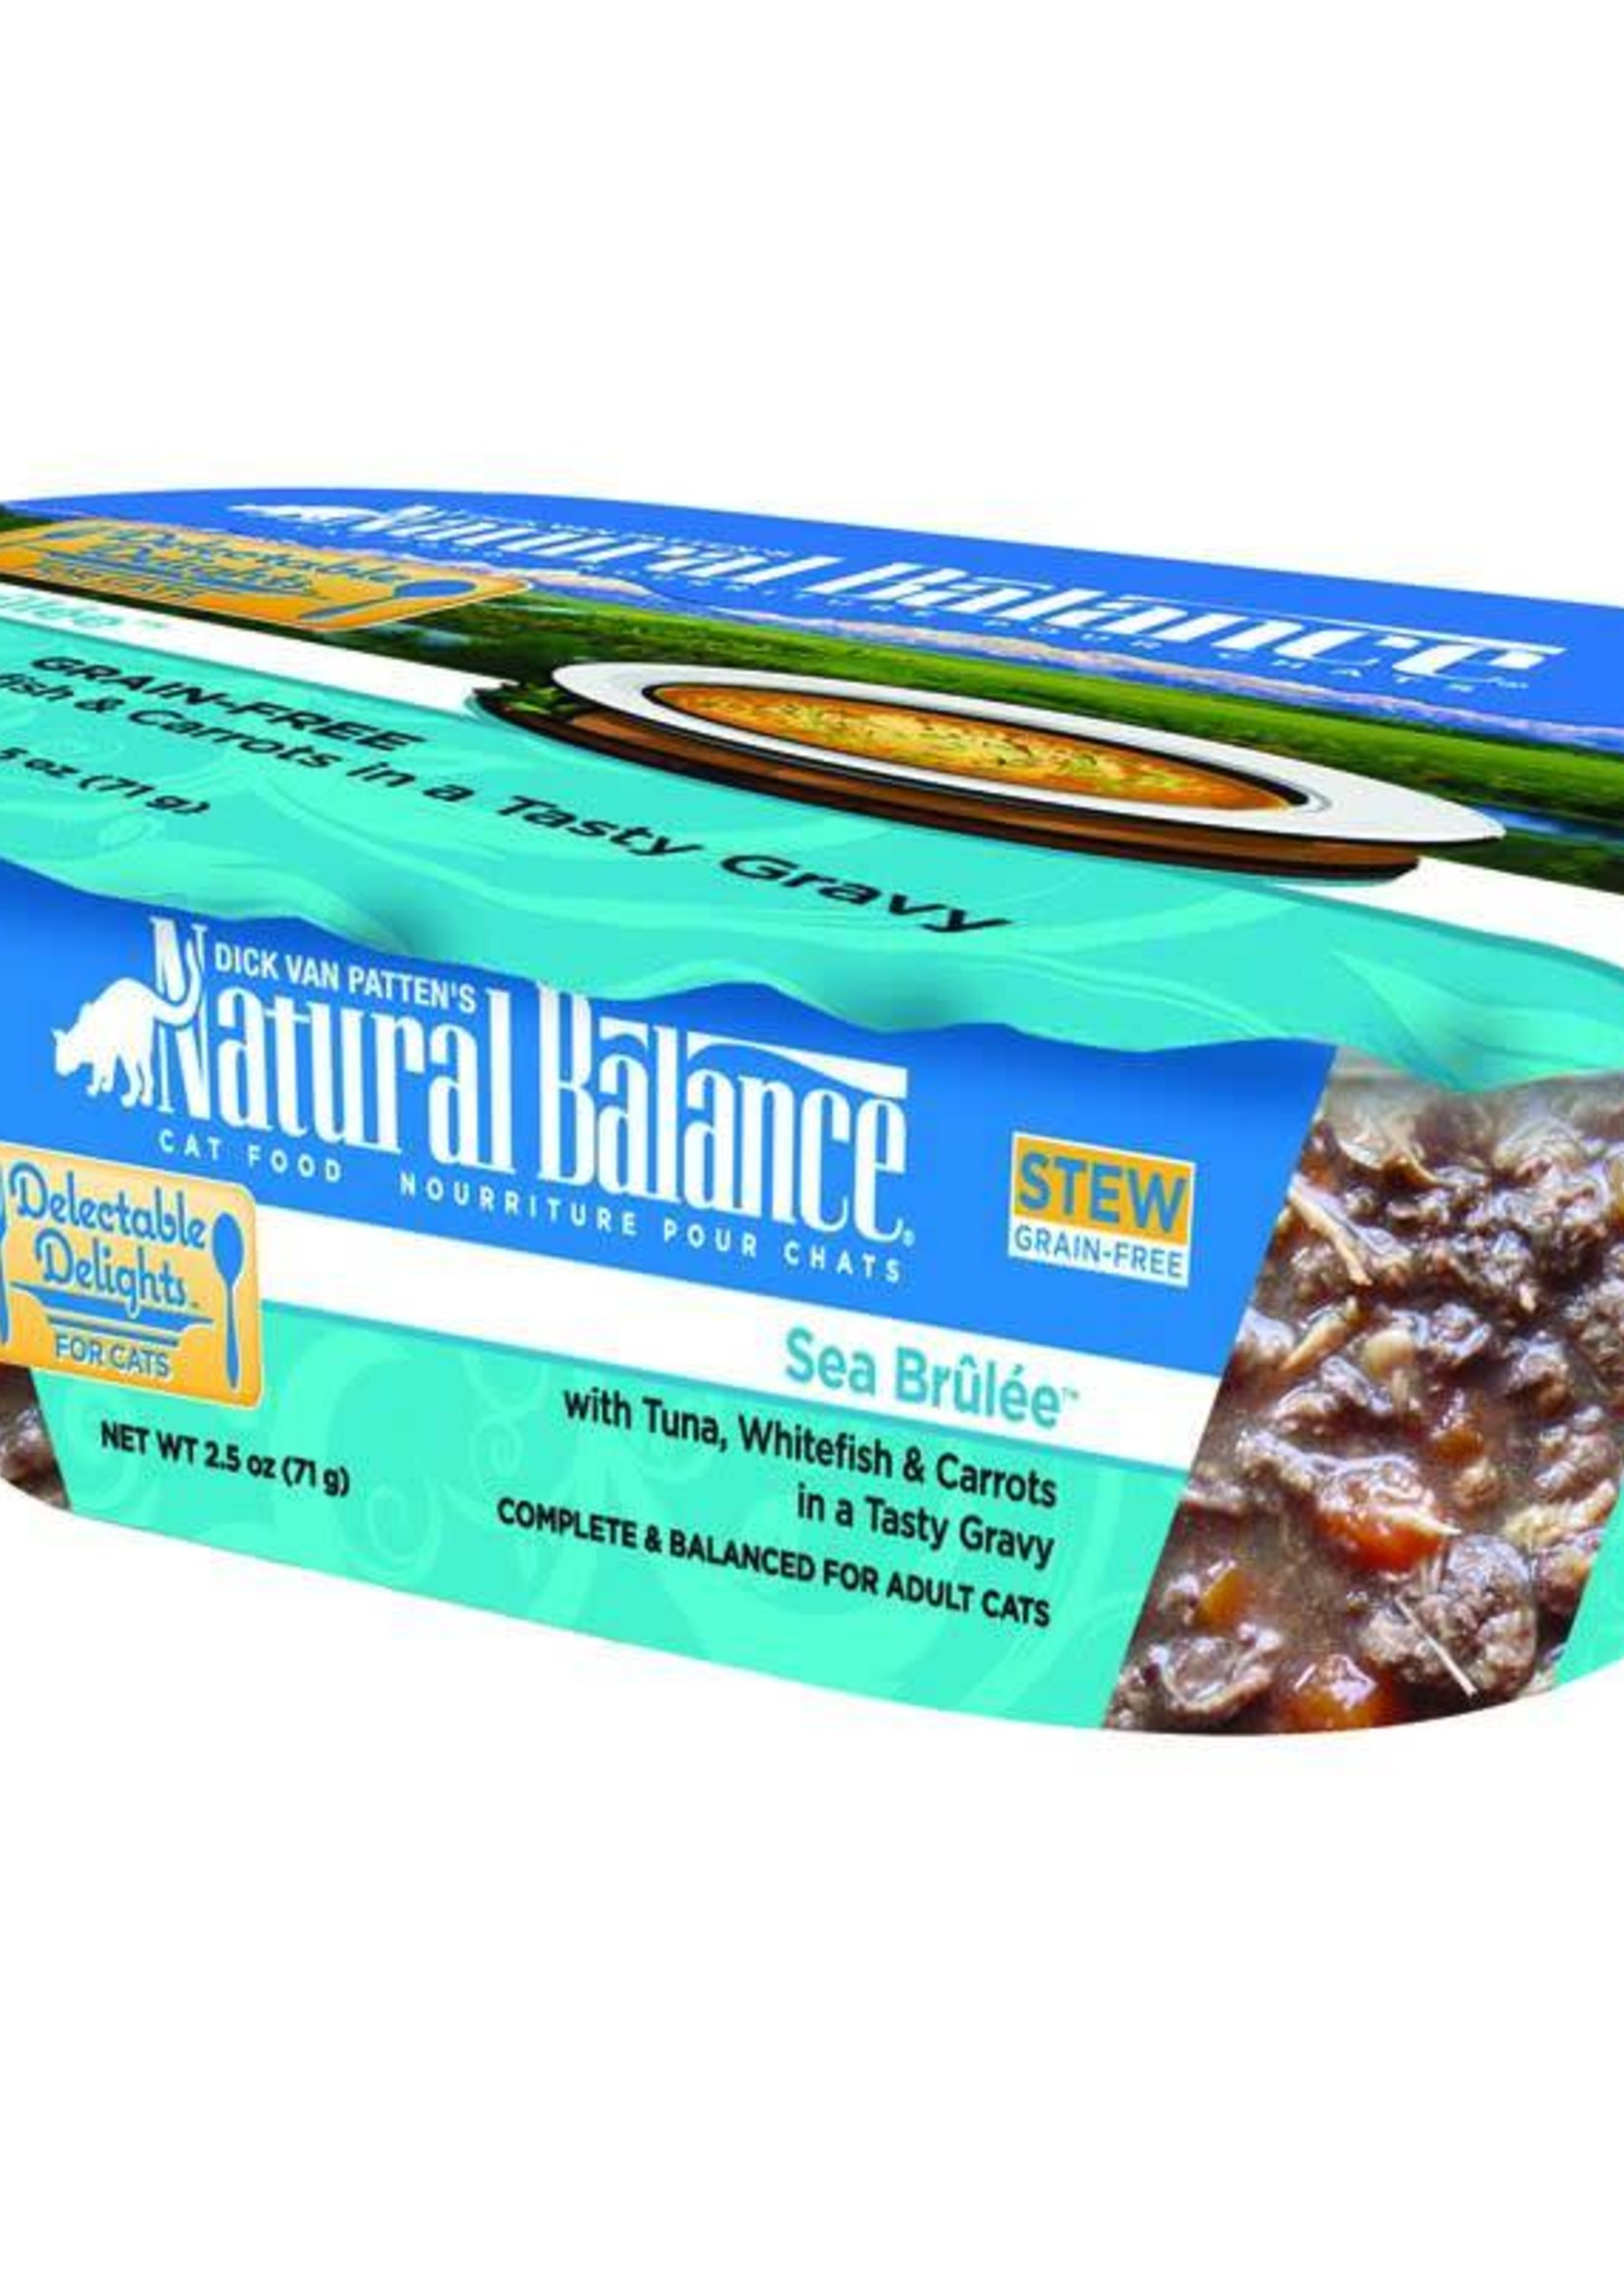 Natural Balance Pet Foods, Inc. Natural Balance Delectable Delights Sea Brûlée Stew Fel 2.5oz